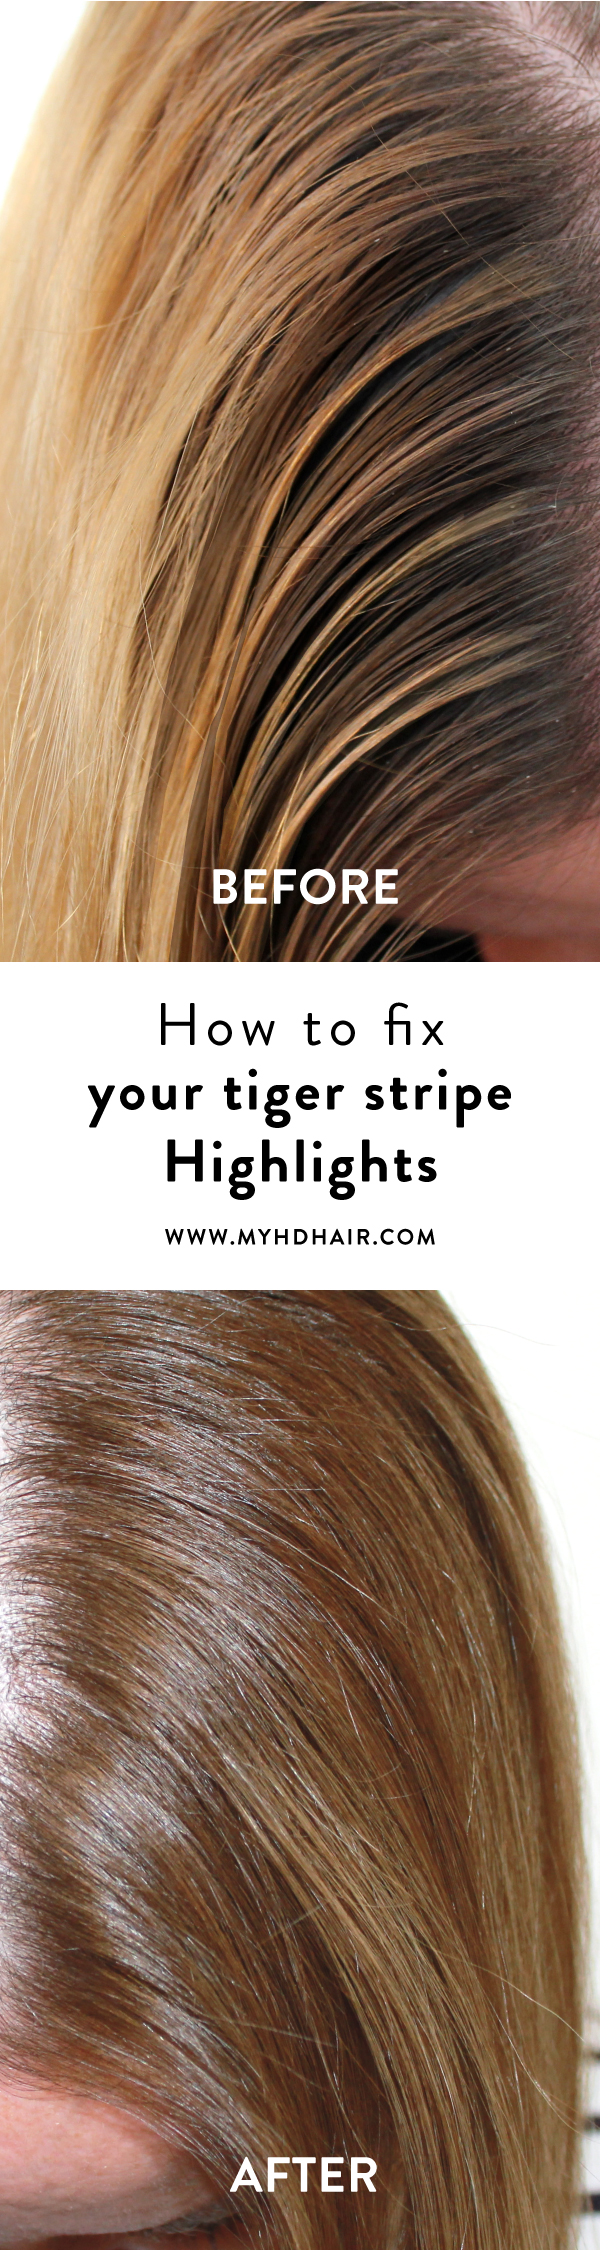 How To Hide Your Tiger Stripe Highlights Beauty Pinterest